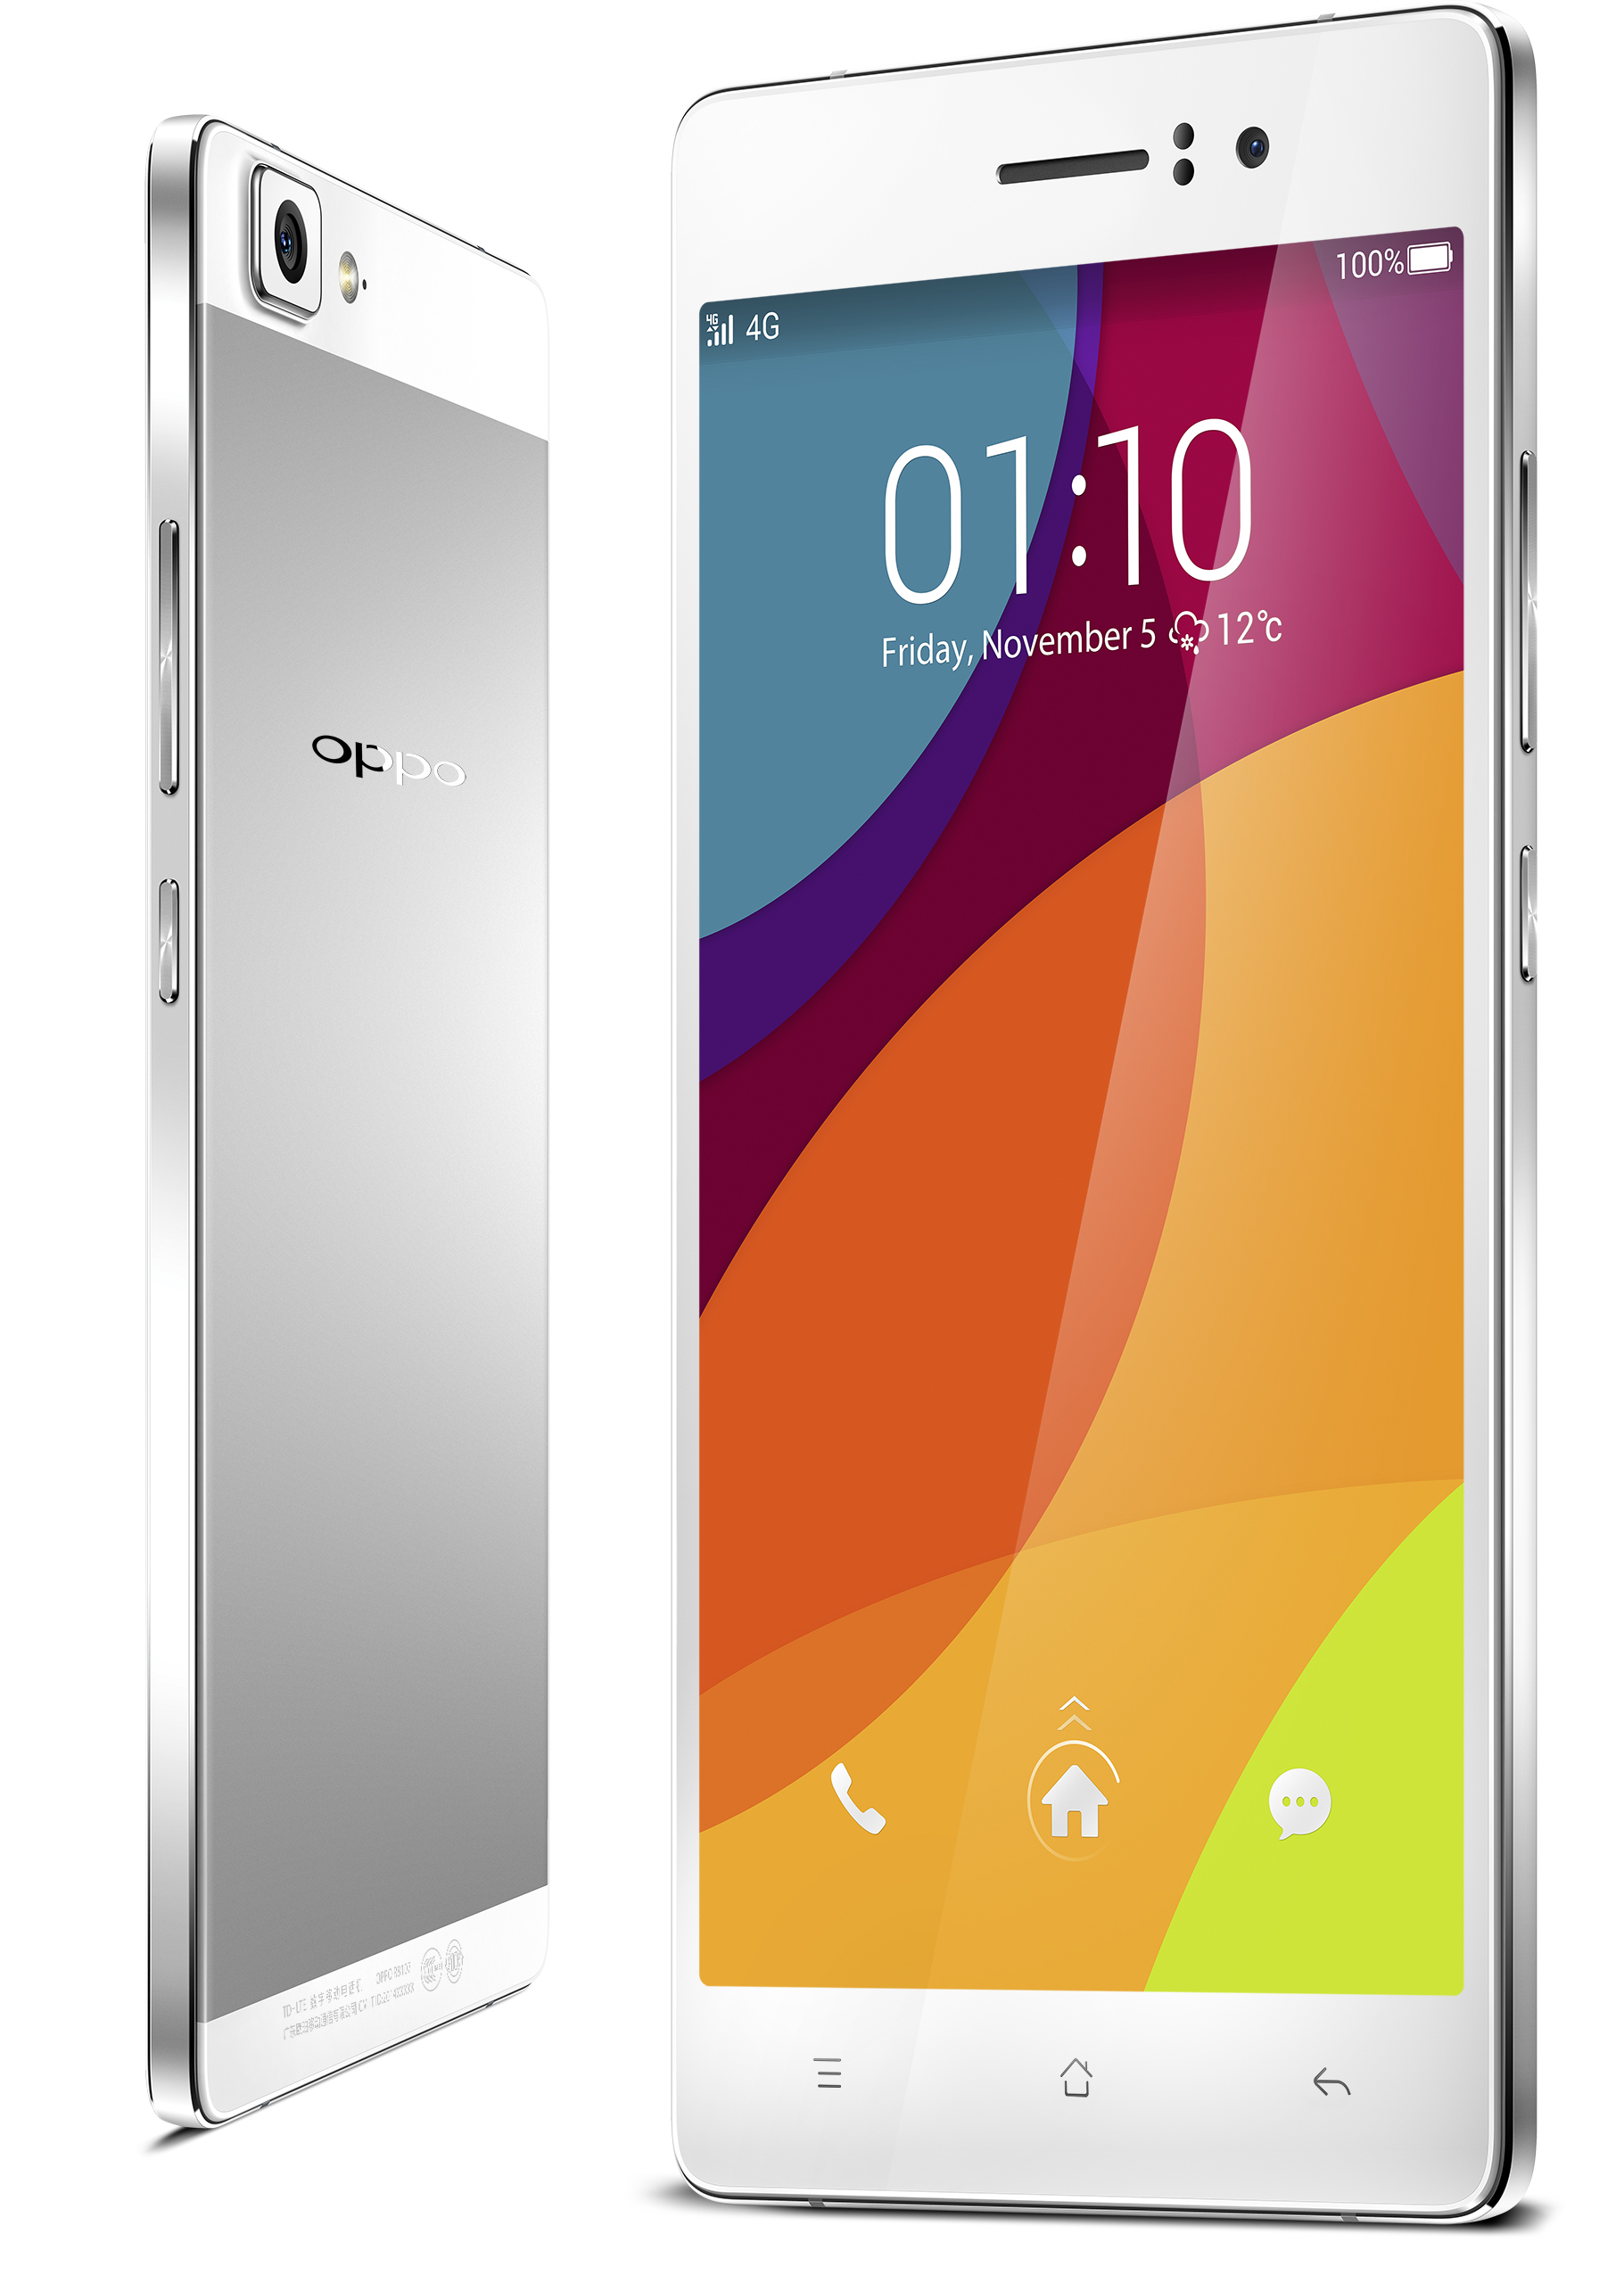 Oppo R5 price in Pakistan is quite reasonable